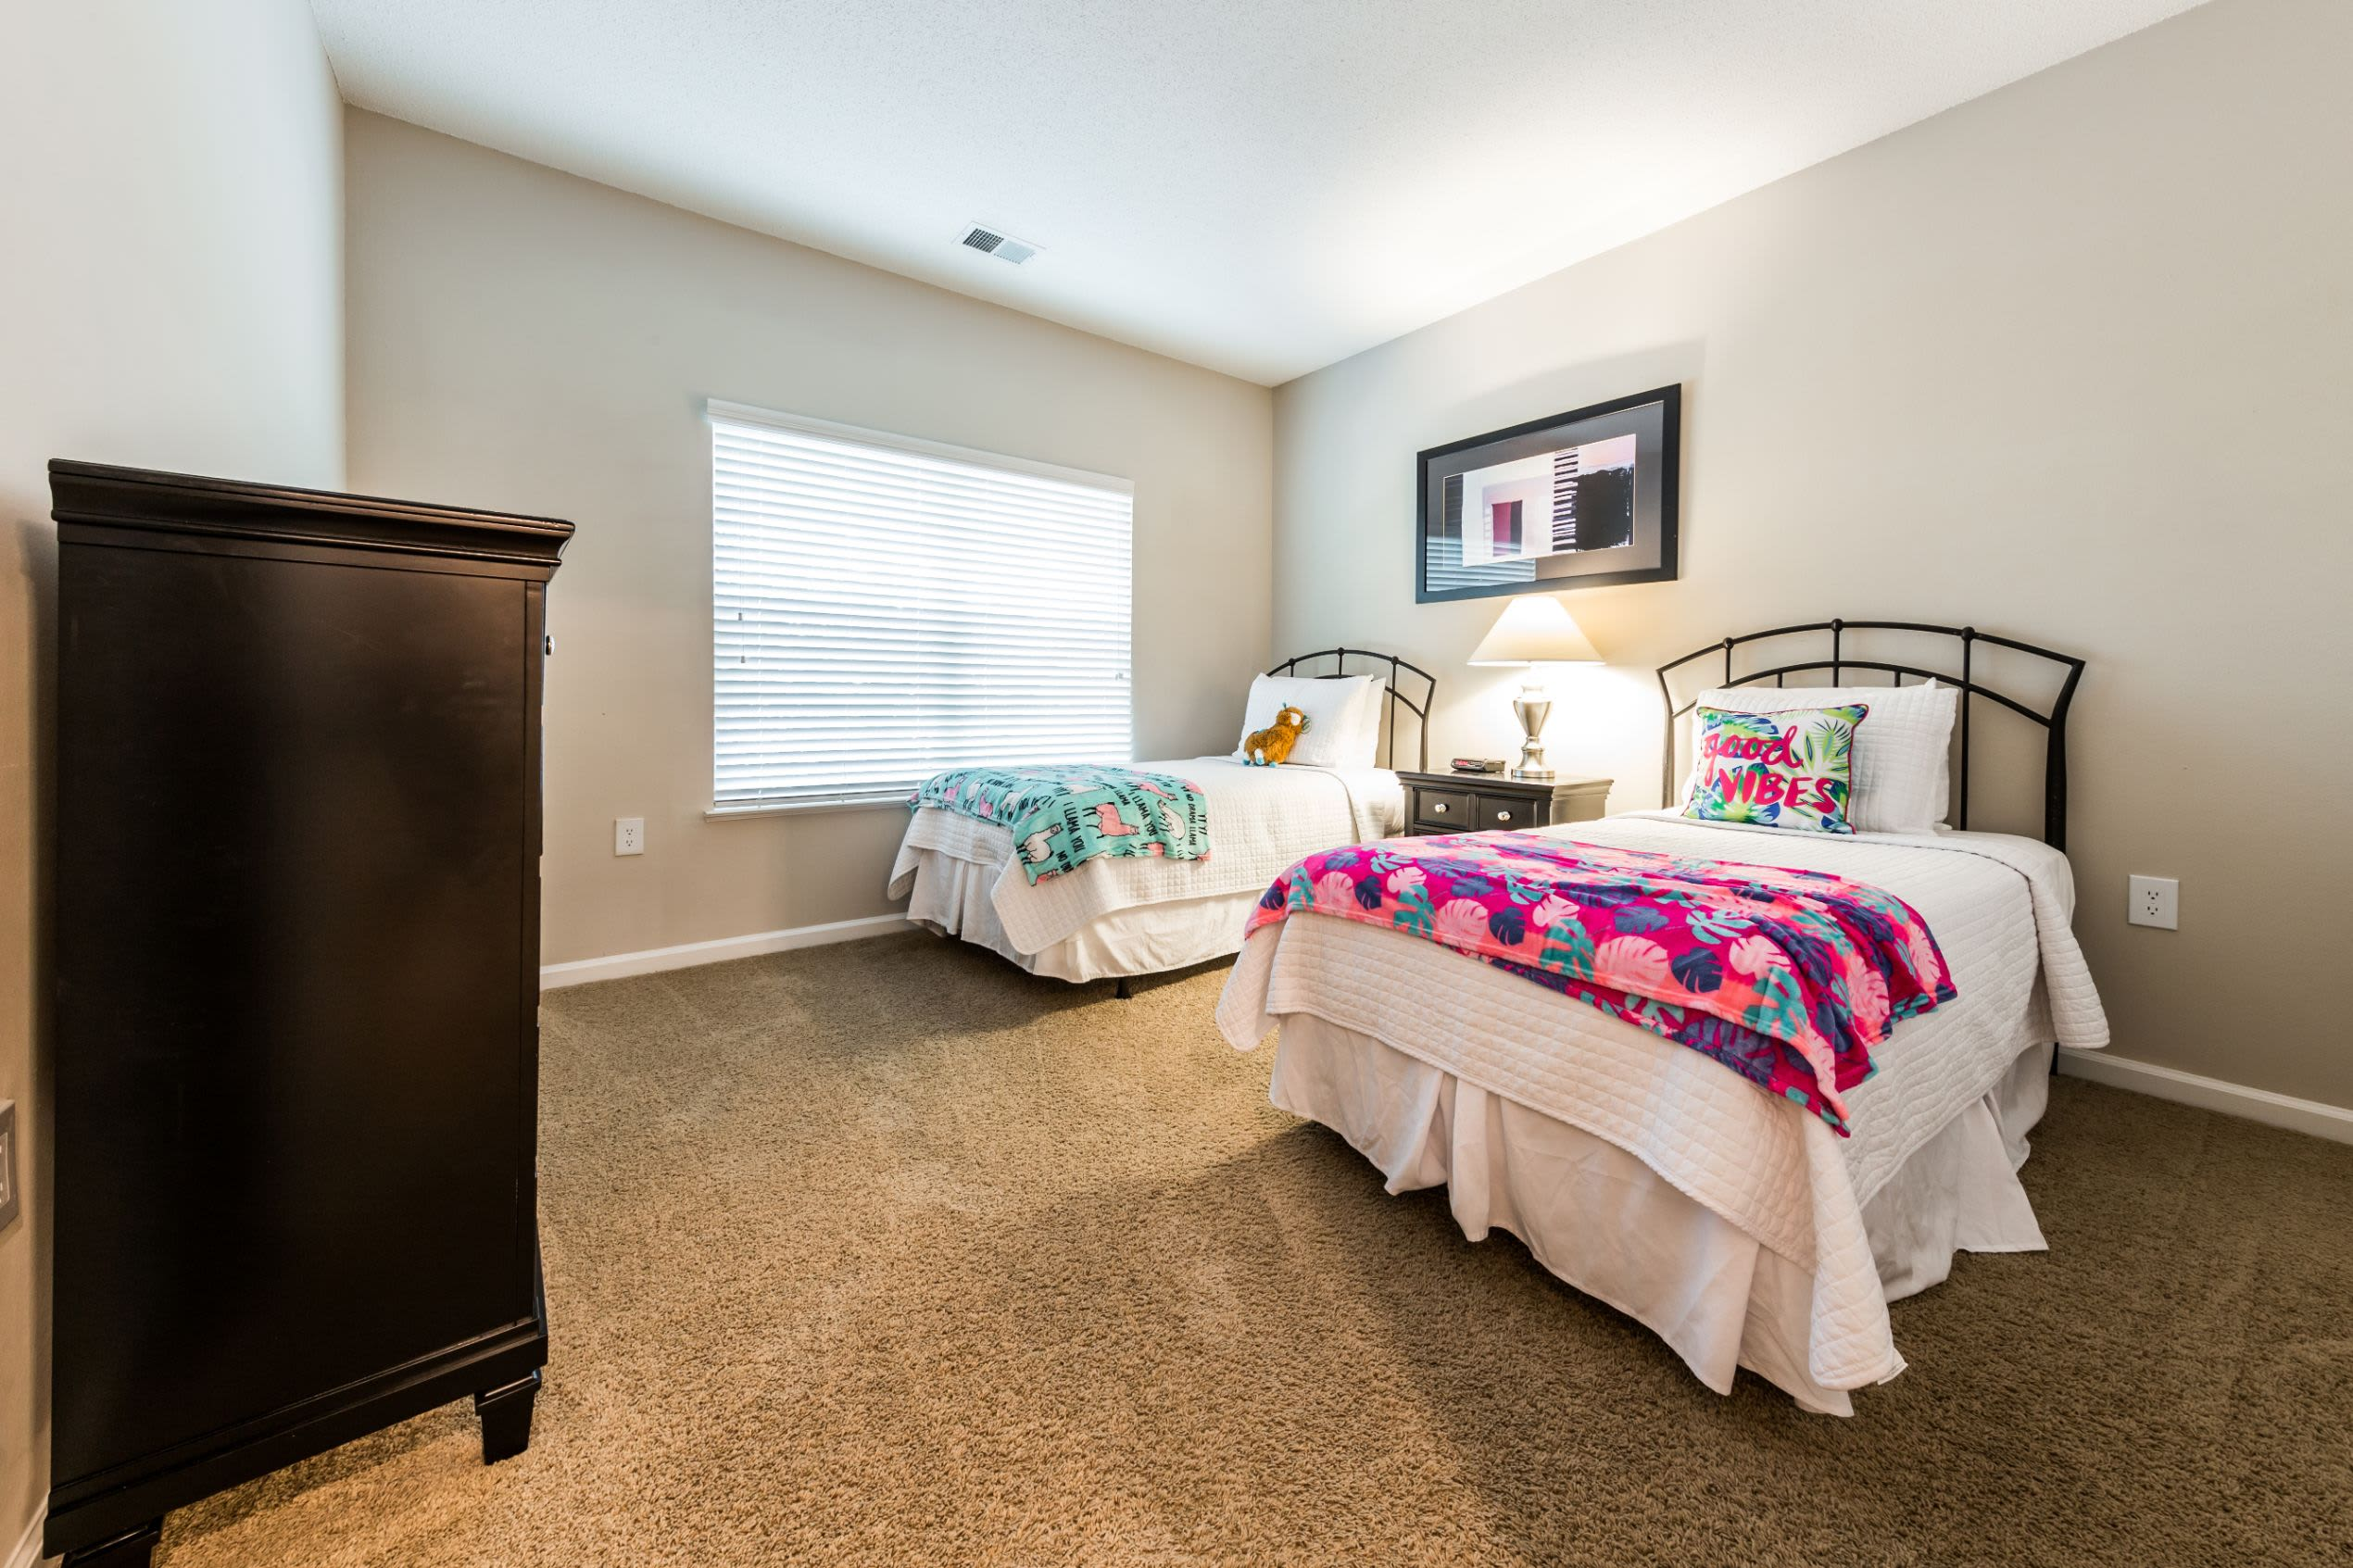 Bedroom with two beds in it at The Preserve at Ballantyne Commons in Charlotte, North Carolina